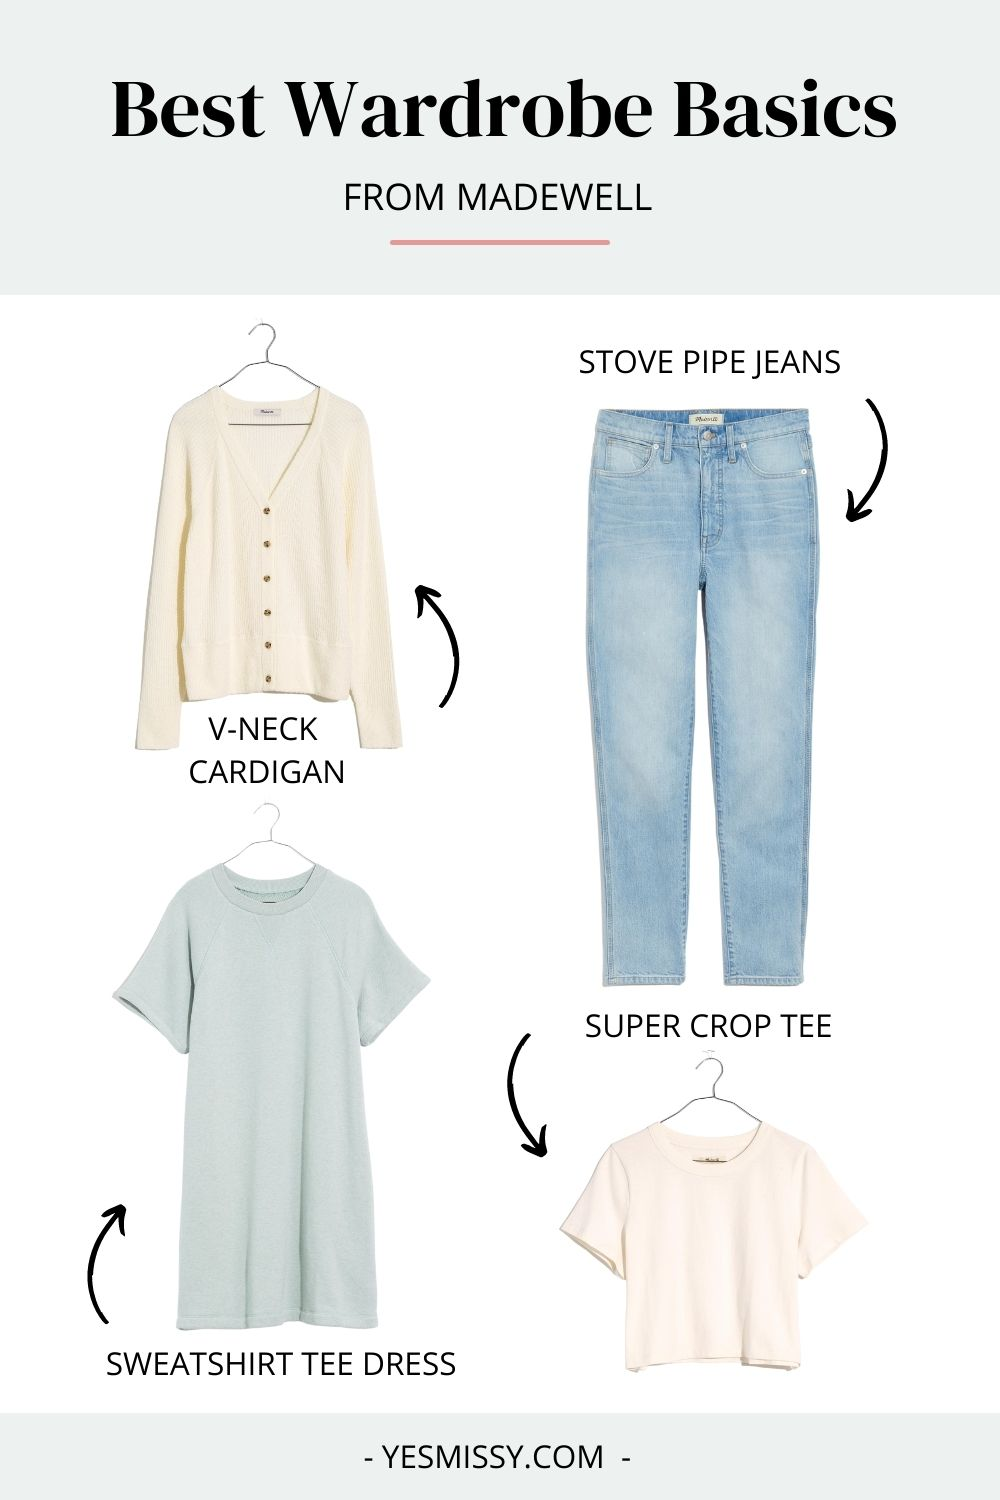 If you're shopping for wardrobe basics, Madewell should  be on your checklist. They make great tees, jeans and sweaters, and everything is oh so comfortable!